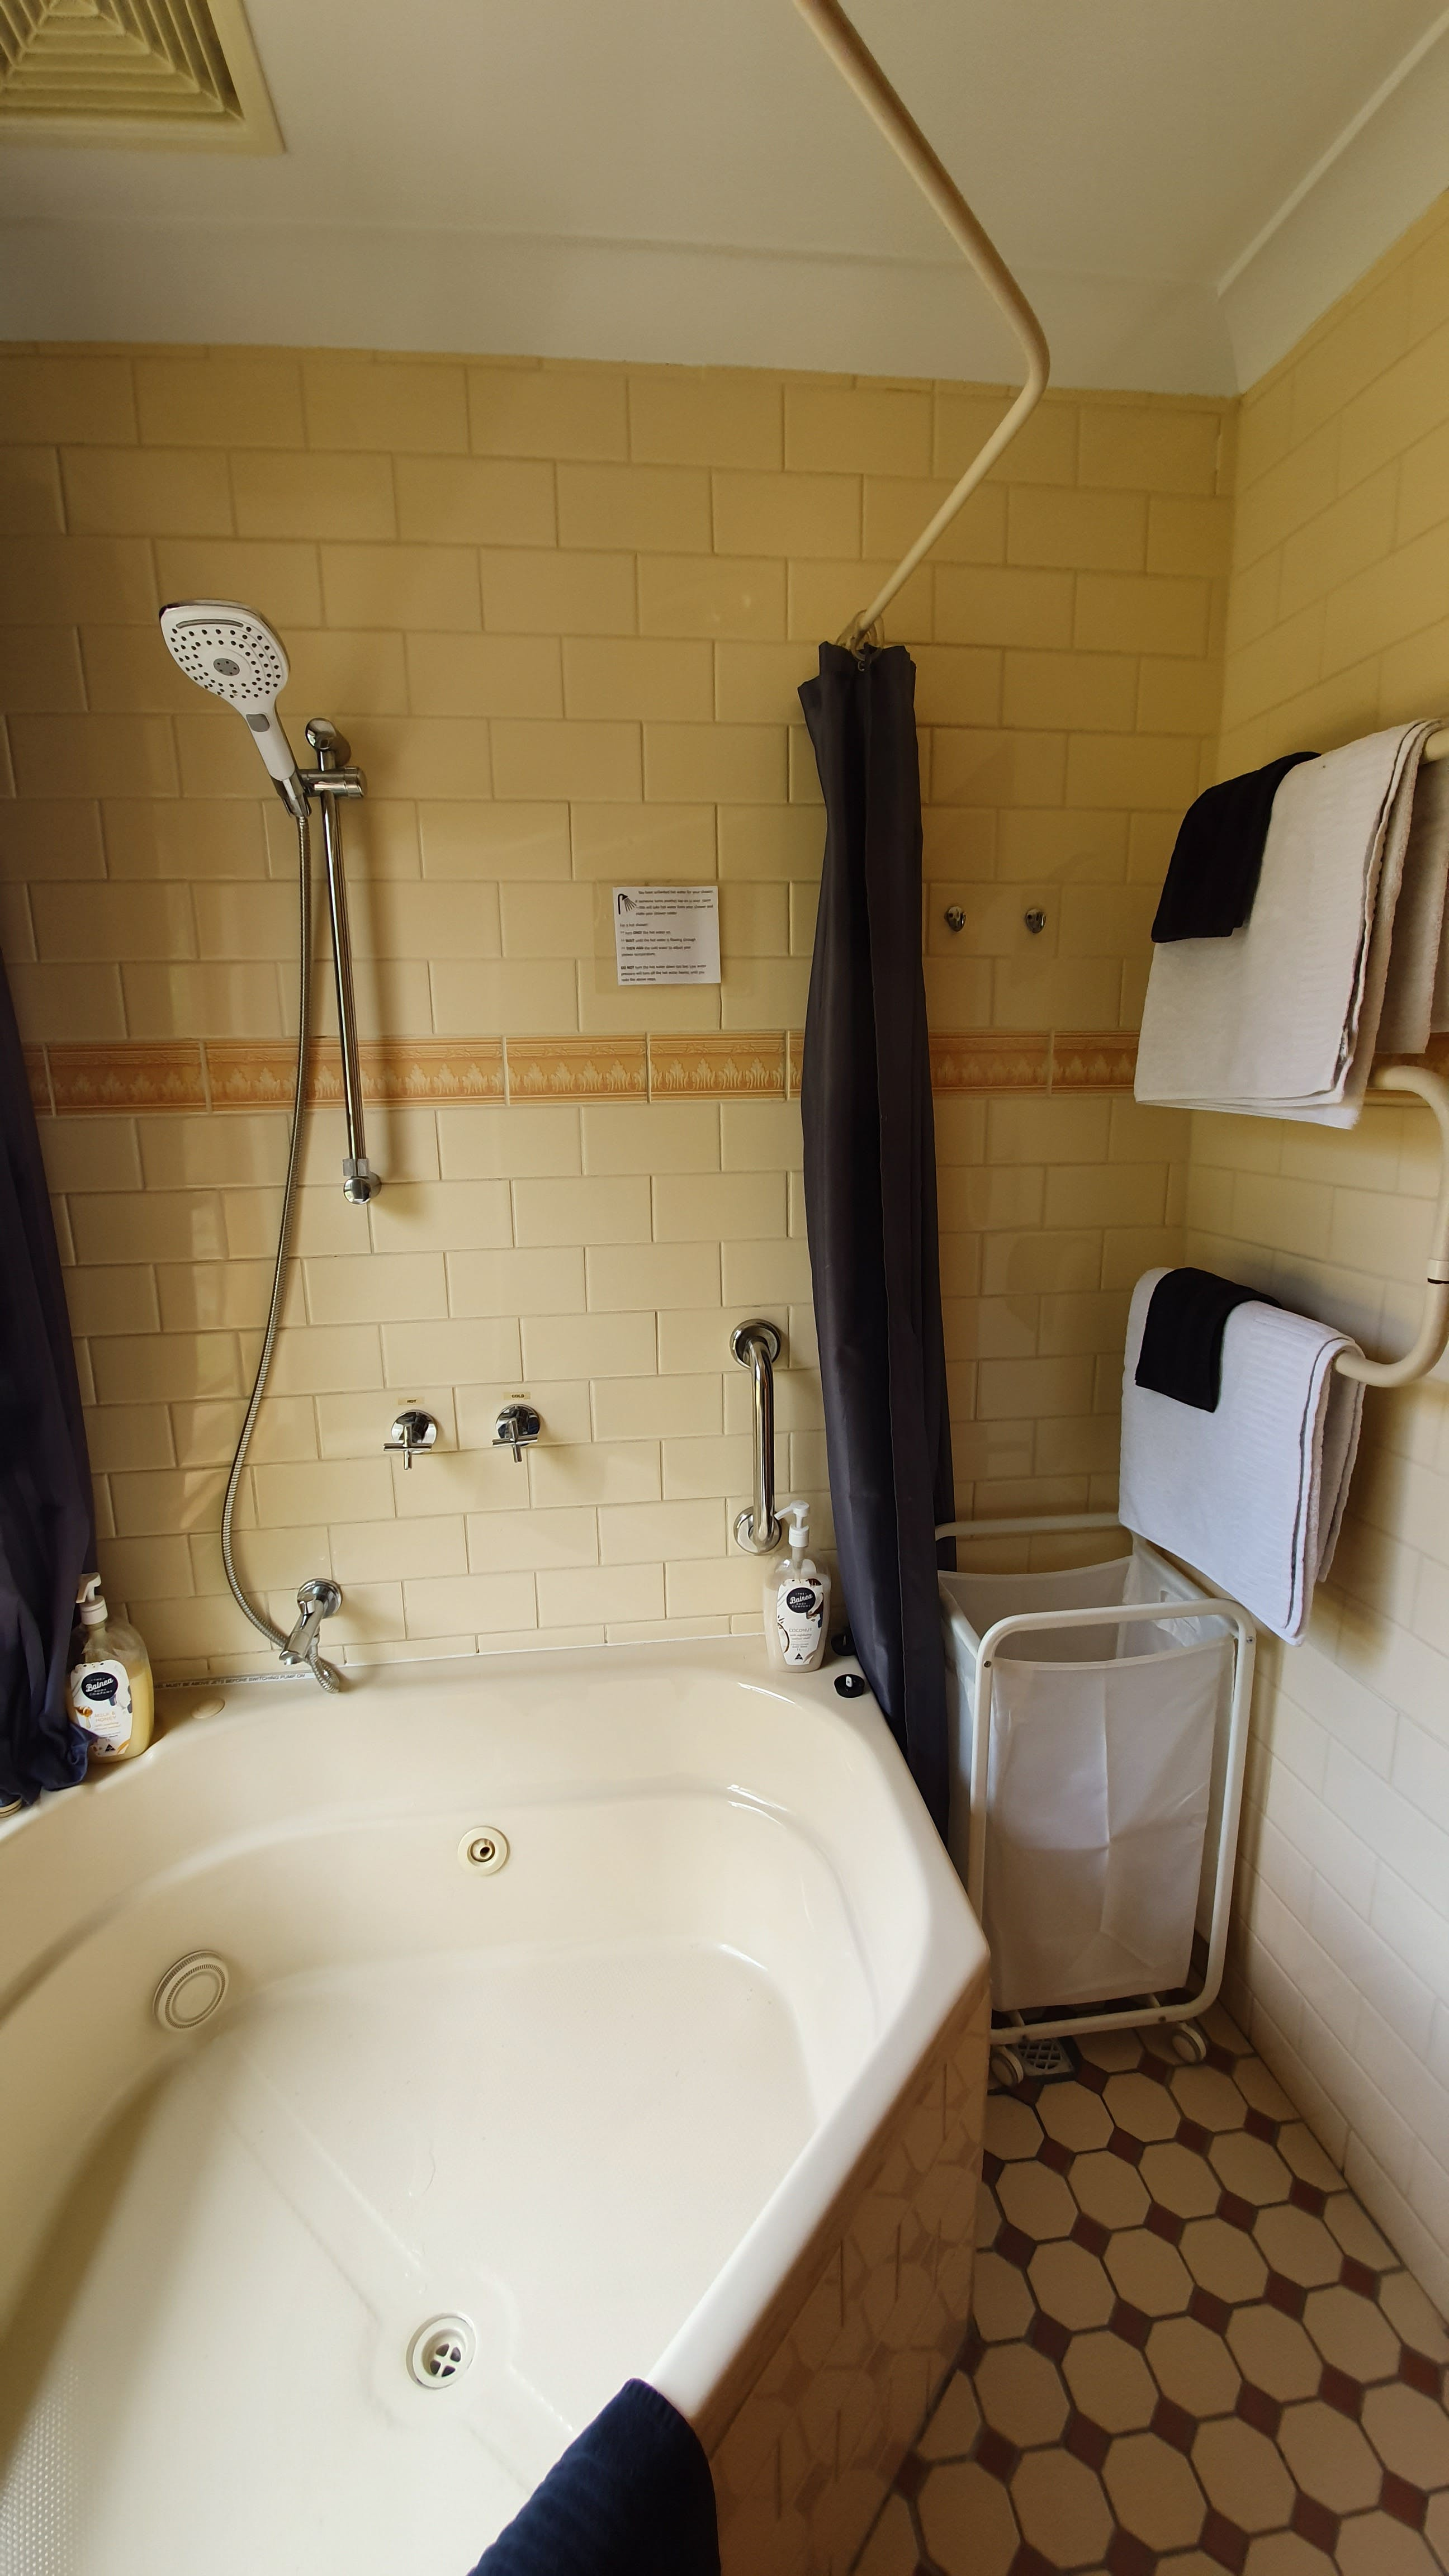 Amble Wren Spa Cottage Spa bathroom with heated towel rails.